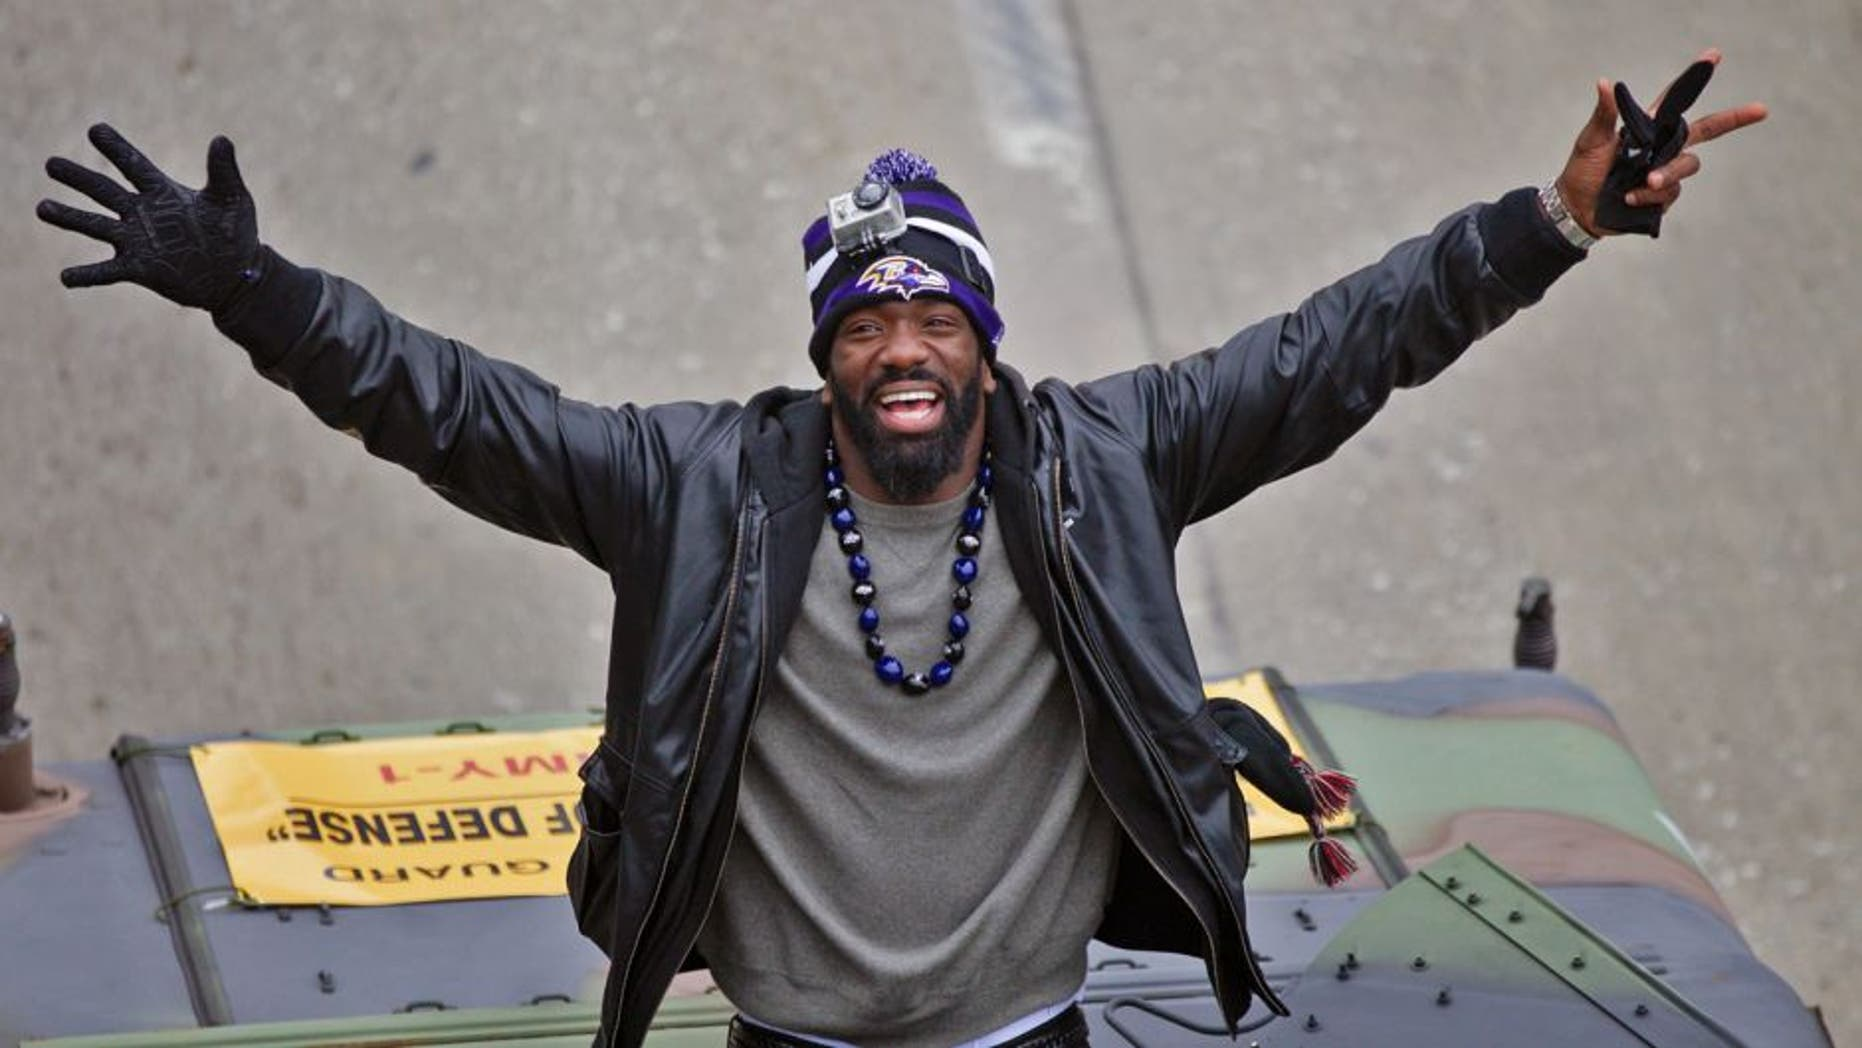 Feb 5, 2013; Baltimore, MD, USA; Baltimore Ravens safety Ed Reed (20) waves to fans during the Baltimore Ravens victory parade and celebration for Super Bowl XLVII through the streets of Baltimore. Mandatory Credit: Maxwell Kruger-USA TODAY Sports